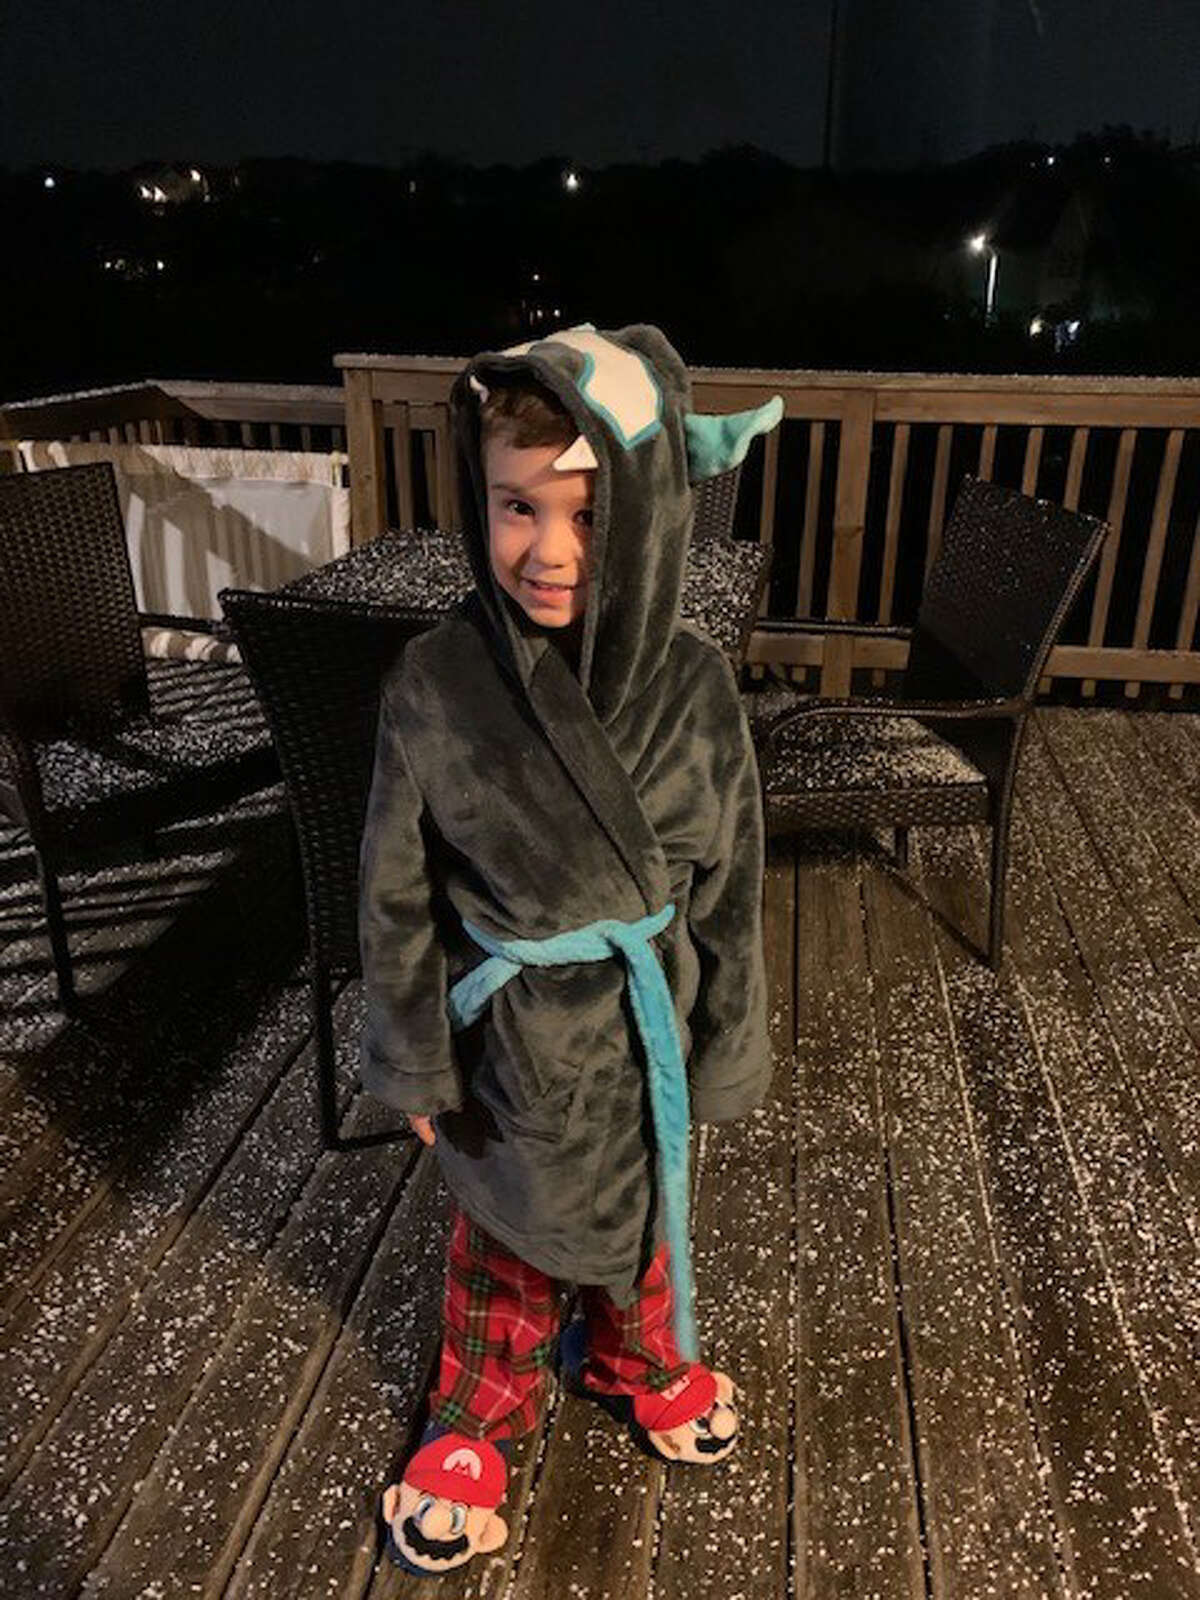 San Antonio saw a wintery mix Wednesday night. MySA readers shared photos of what they saw in their neighborhood.